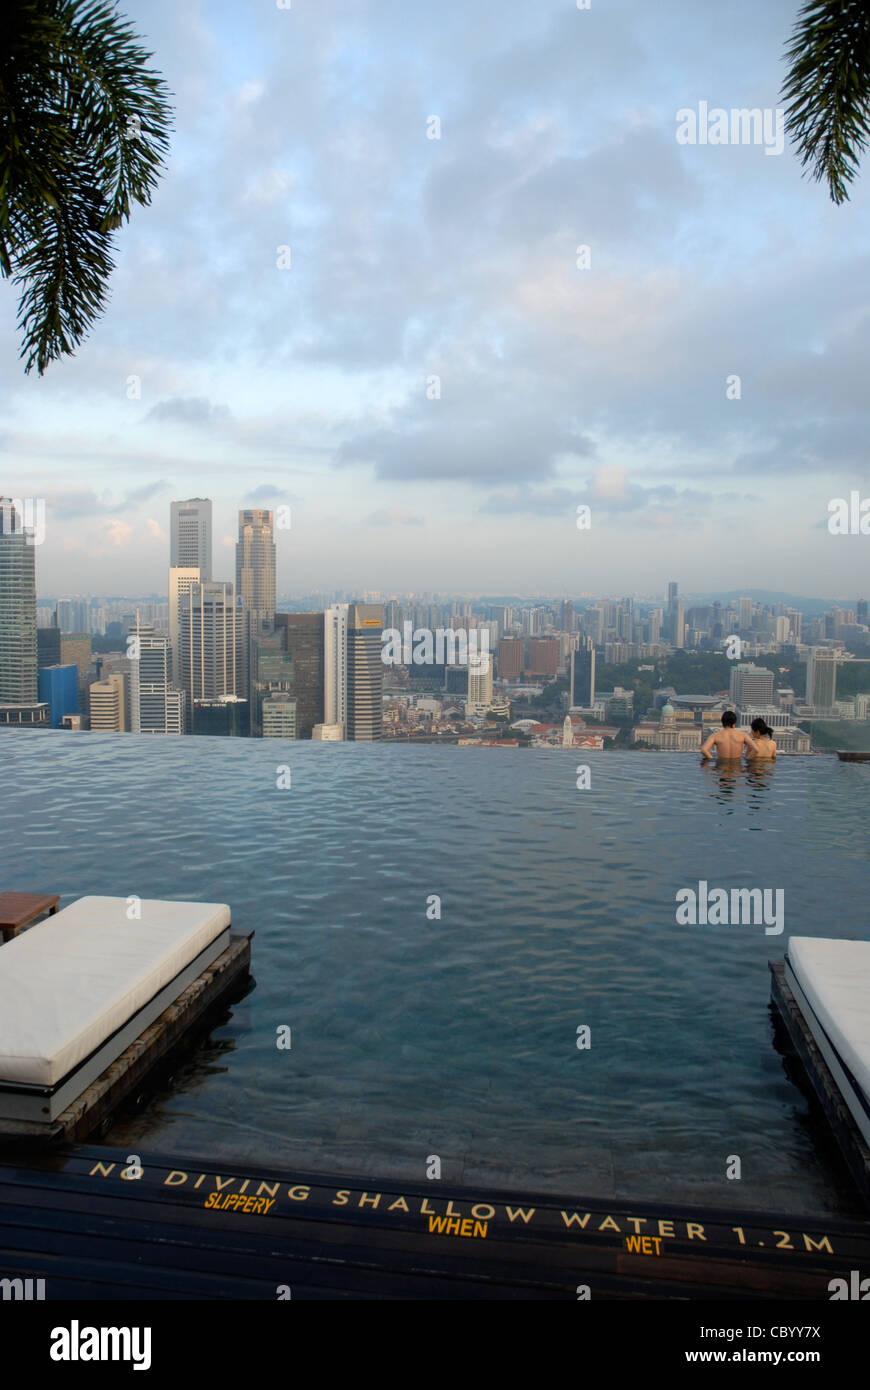 Infinity Pool Singapore Stock Photos Infinity Pool Singapore Stock Images Alamy